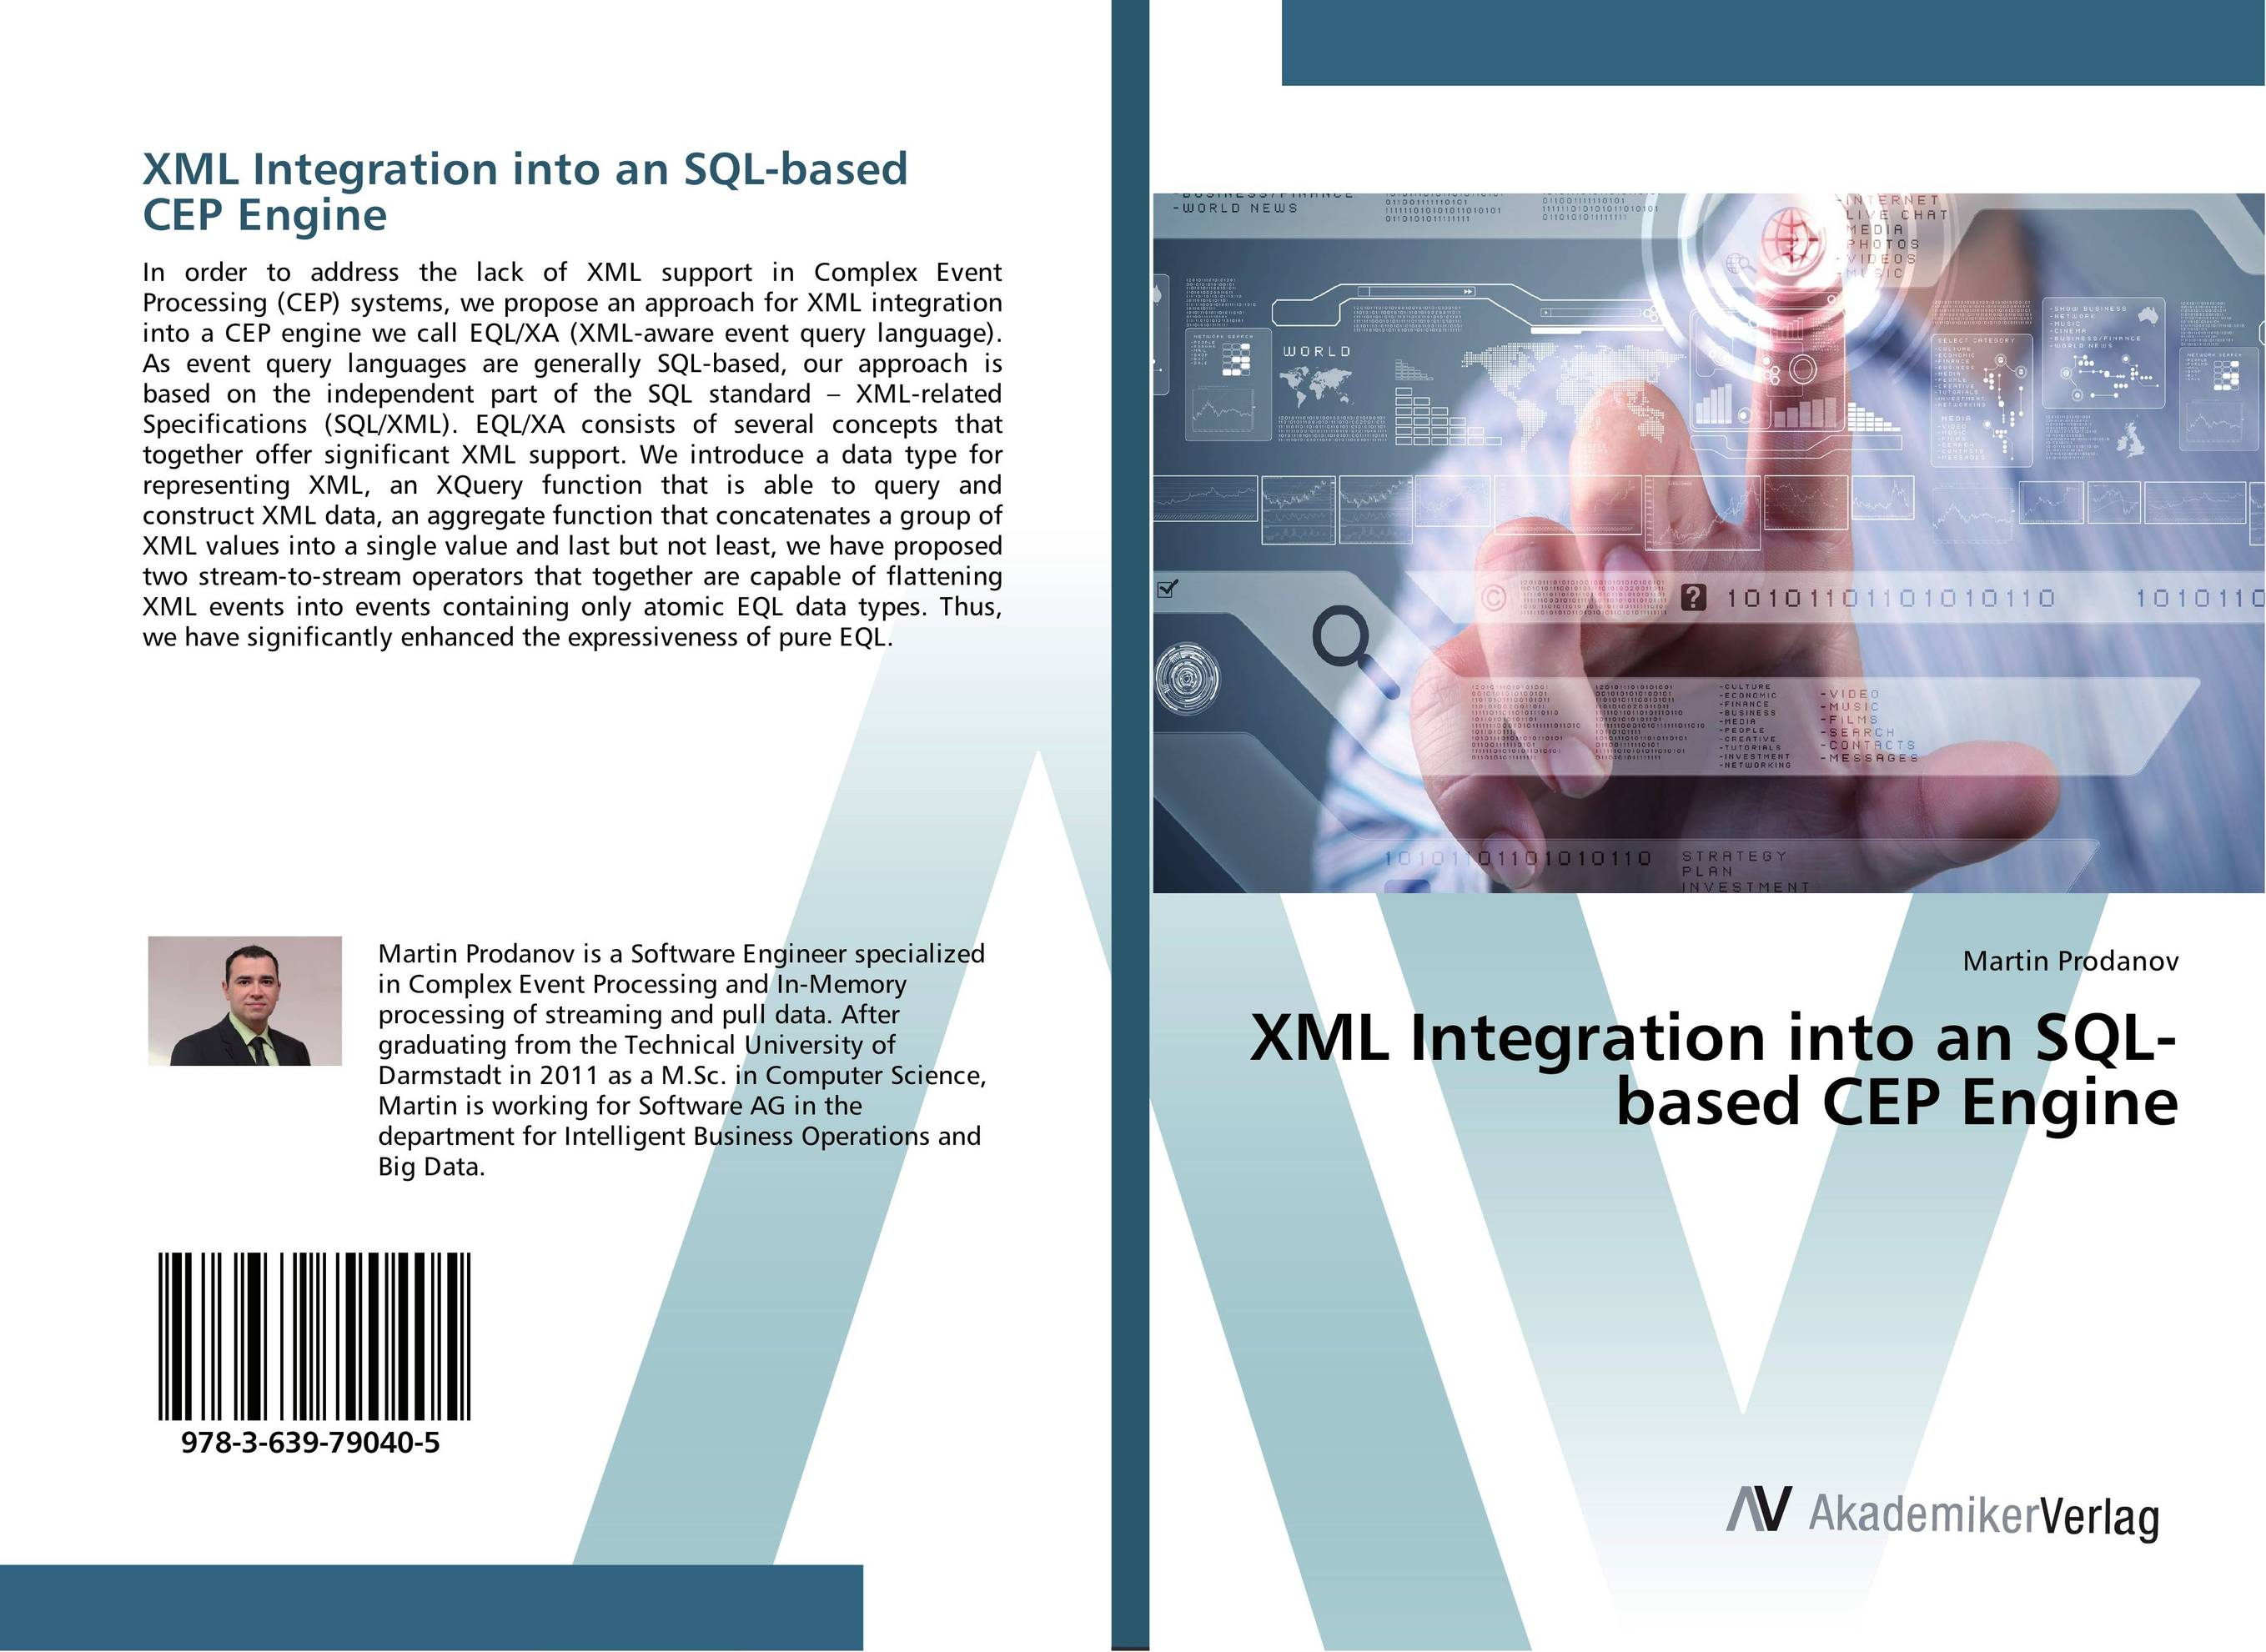 XML Integration into an SQL-based CEP Engine sitemap 359 xml